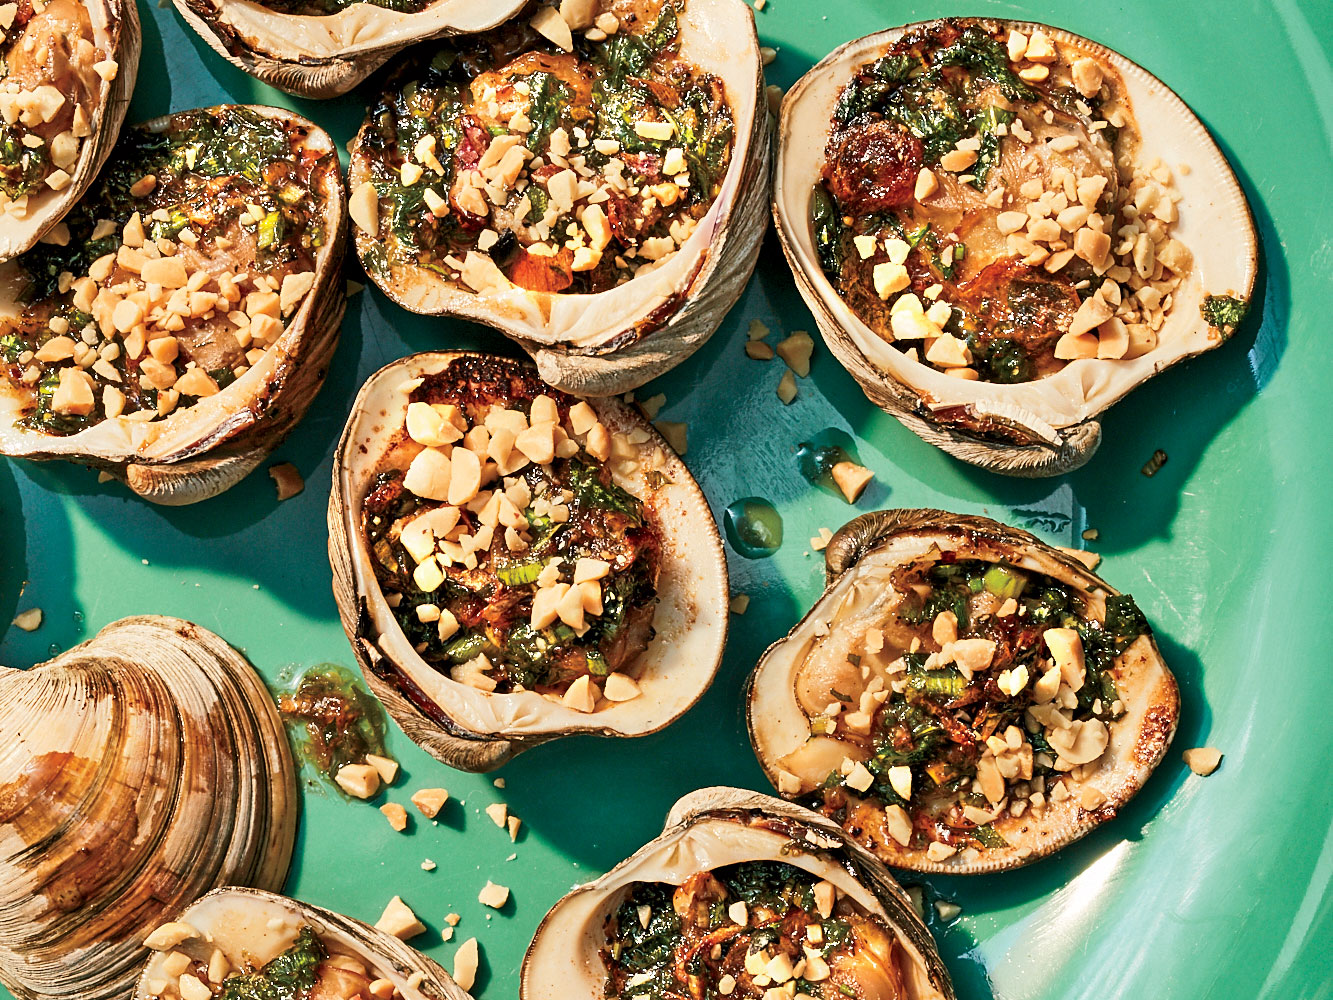 Vietnamese Grilled Clams with Oyster Sauce and Peanuts